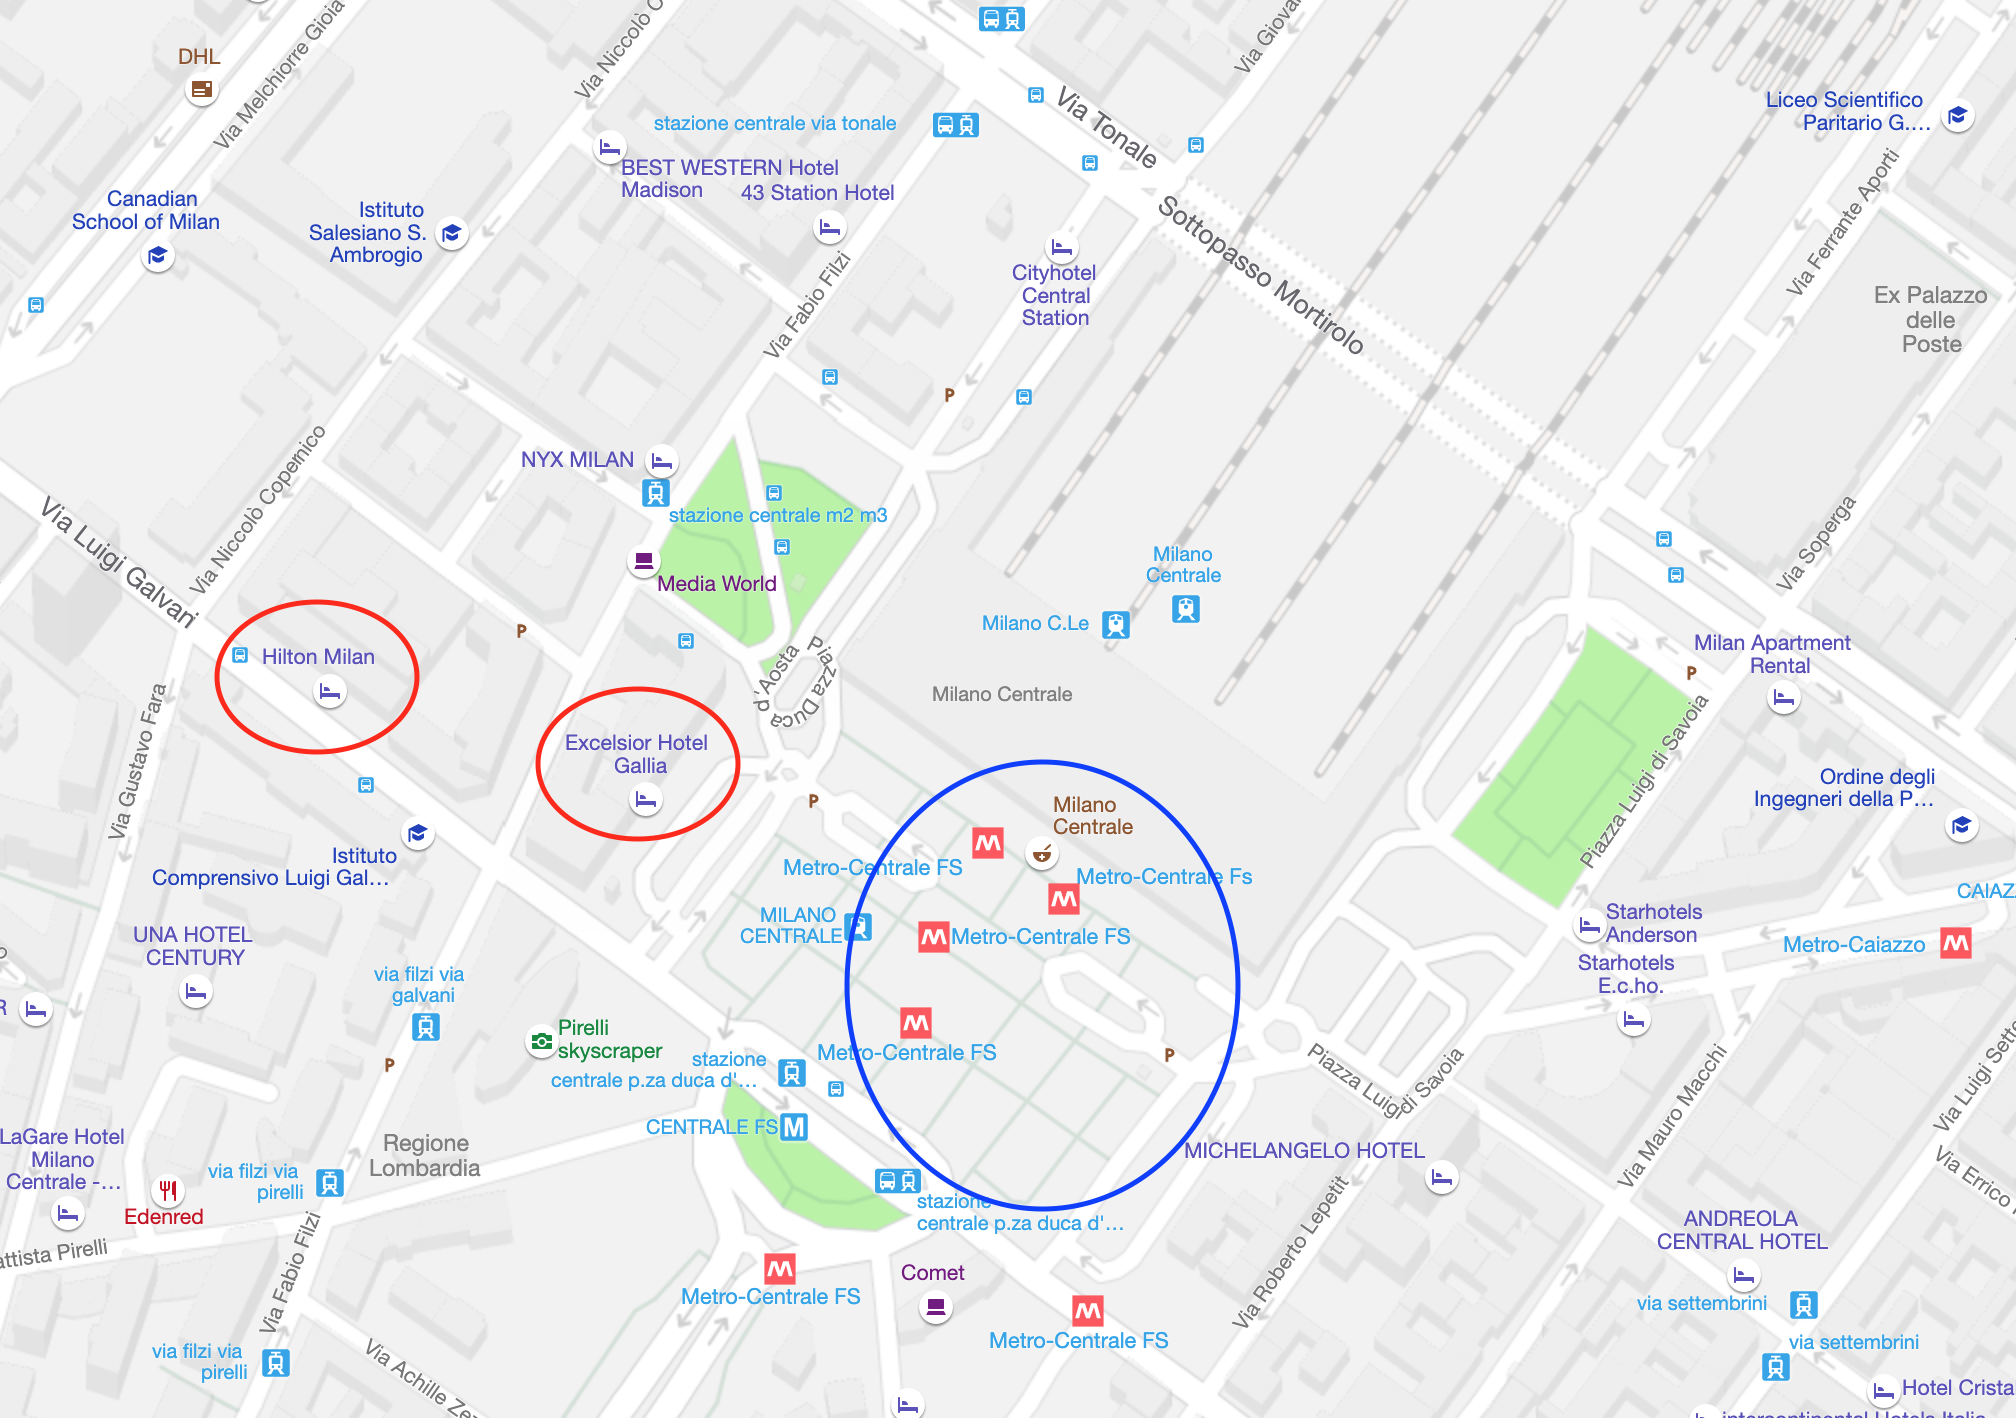 The Hilton Milan and the Excelsior Hotel Gallía are located a block apart and are both close to Milano Centrale.  (click to enlarge)